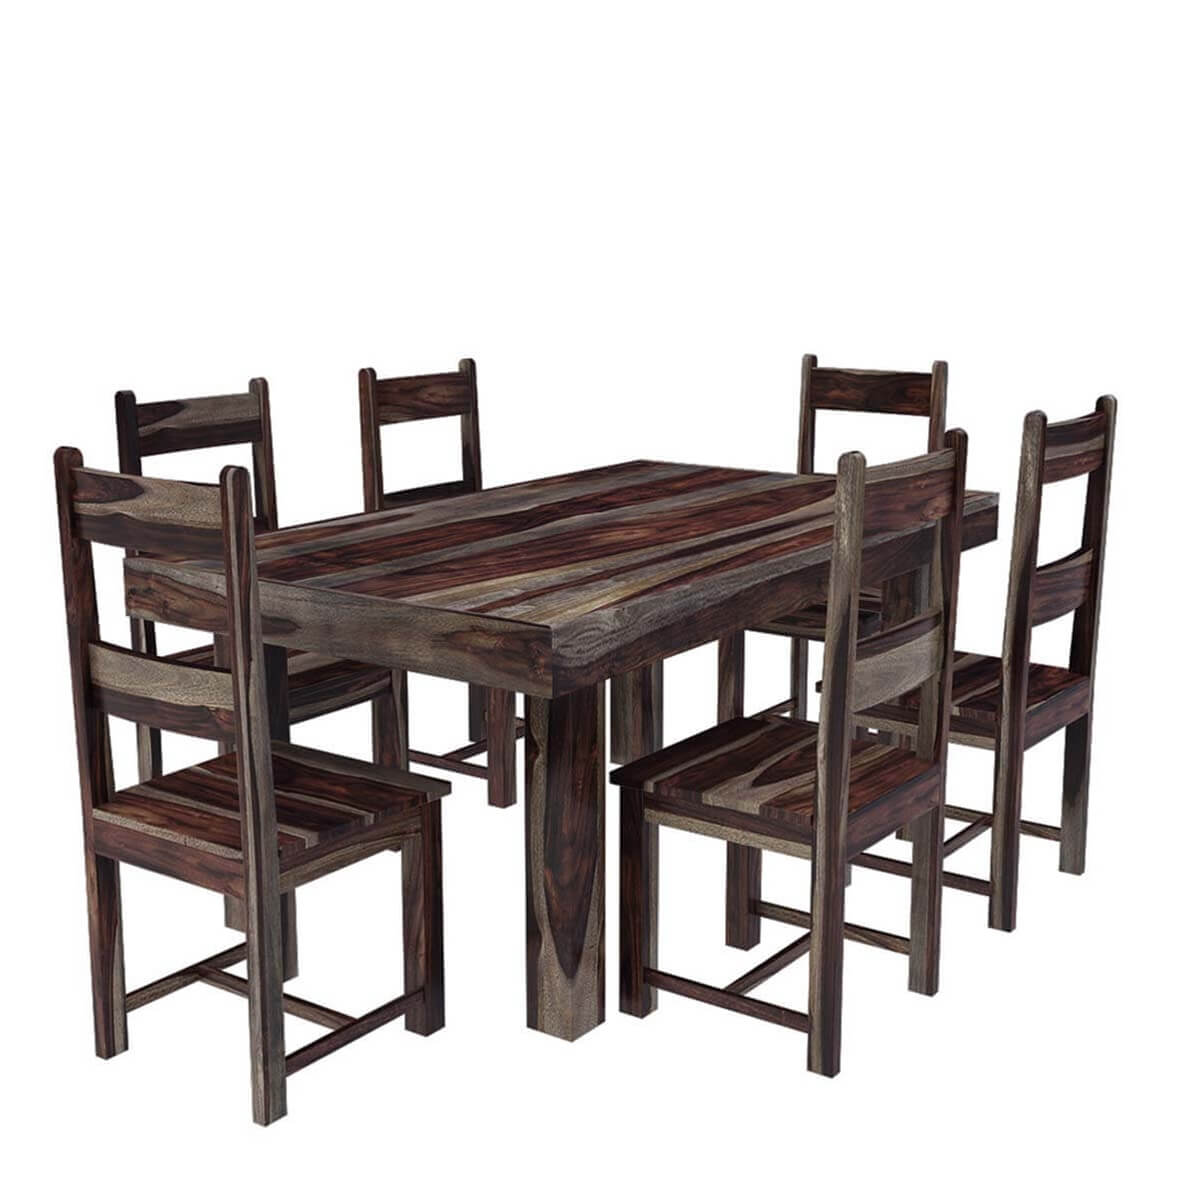 70 Solid Wood Dallas Ranch Rectangular Dining Room Table For 6 People